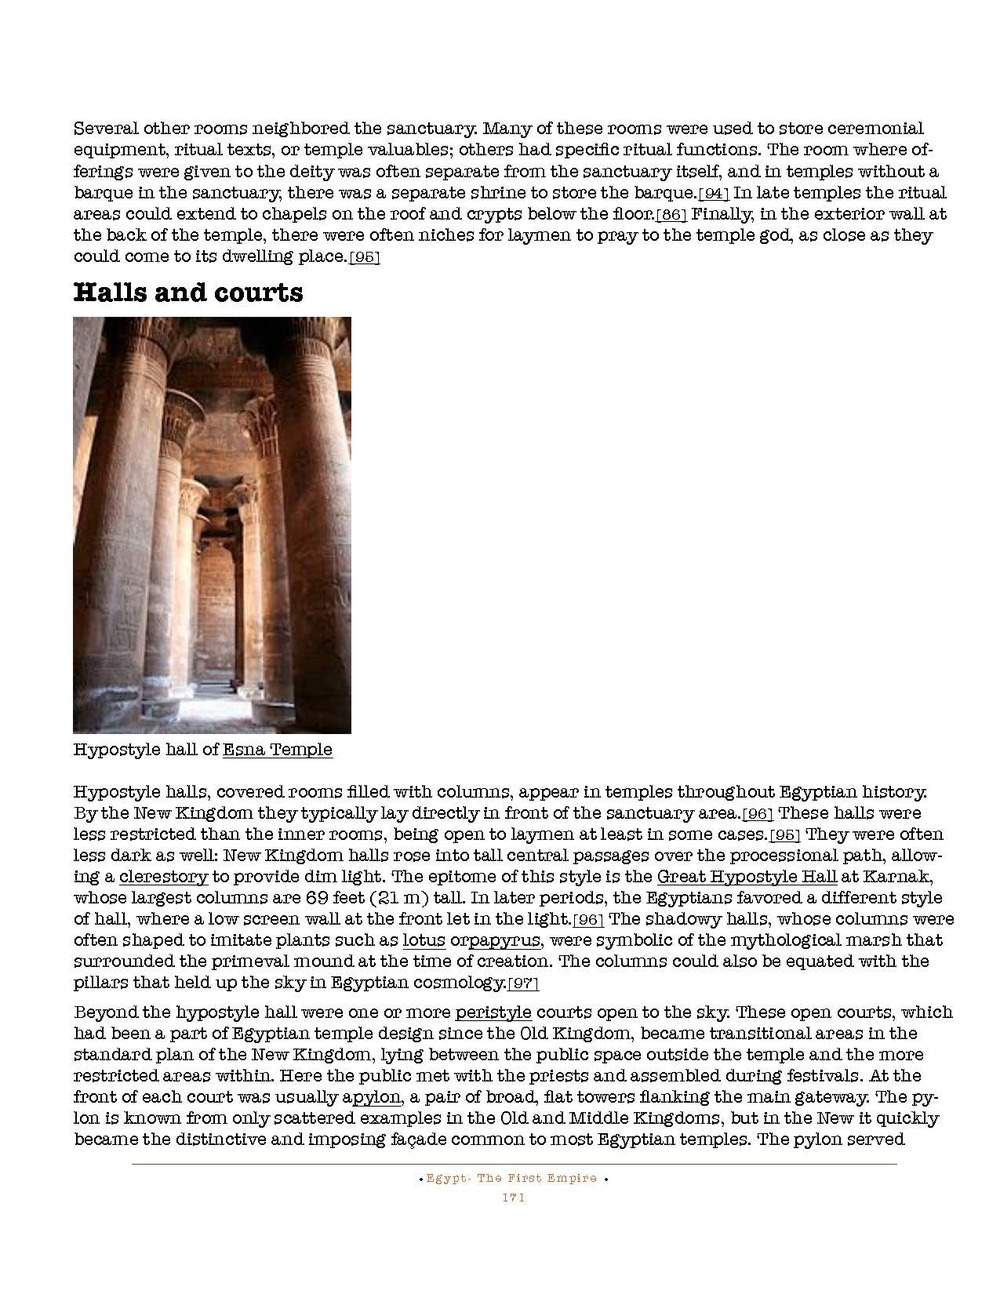 HOCE- Egypt  (First Empire) Notes_Page_171.jpg